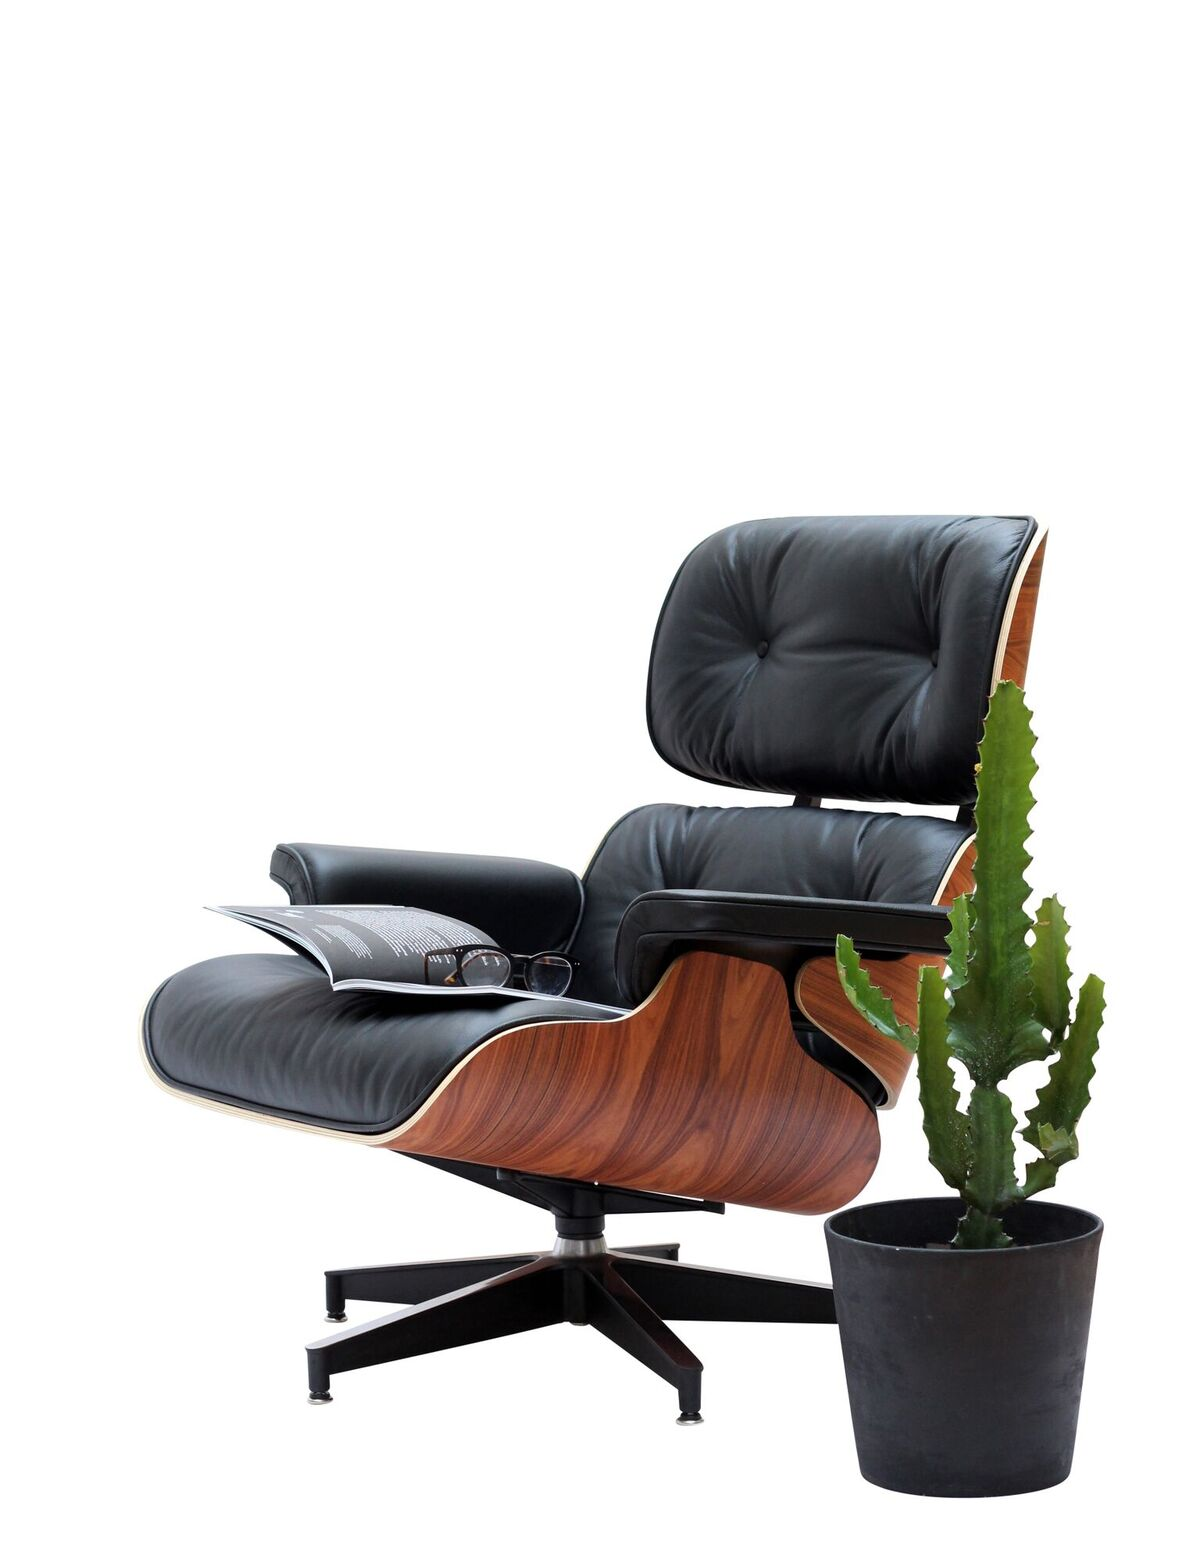 knoll eames chair. Pash Classics Specialise In Reproductions Of Iconic Furniture Pieces From Designers Such As Charles And Ray Eames, Mies Van Der Rohe, Florence Knoll, Knoll Eames Chair 0